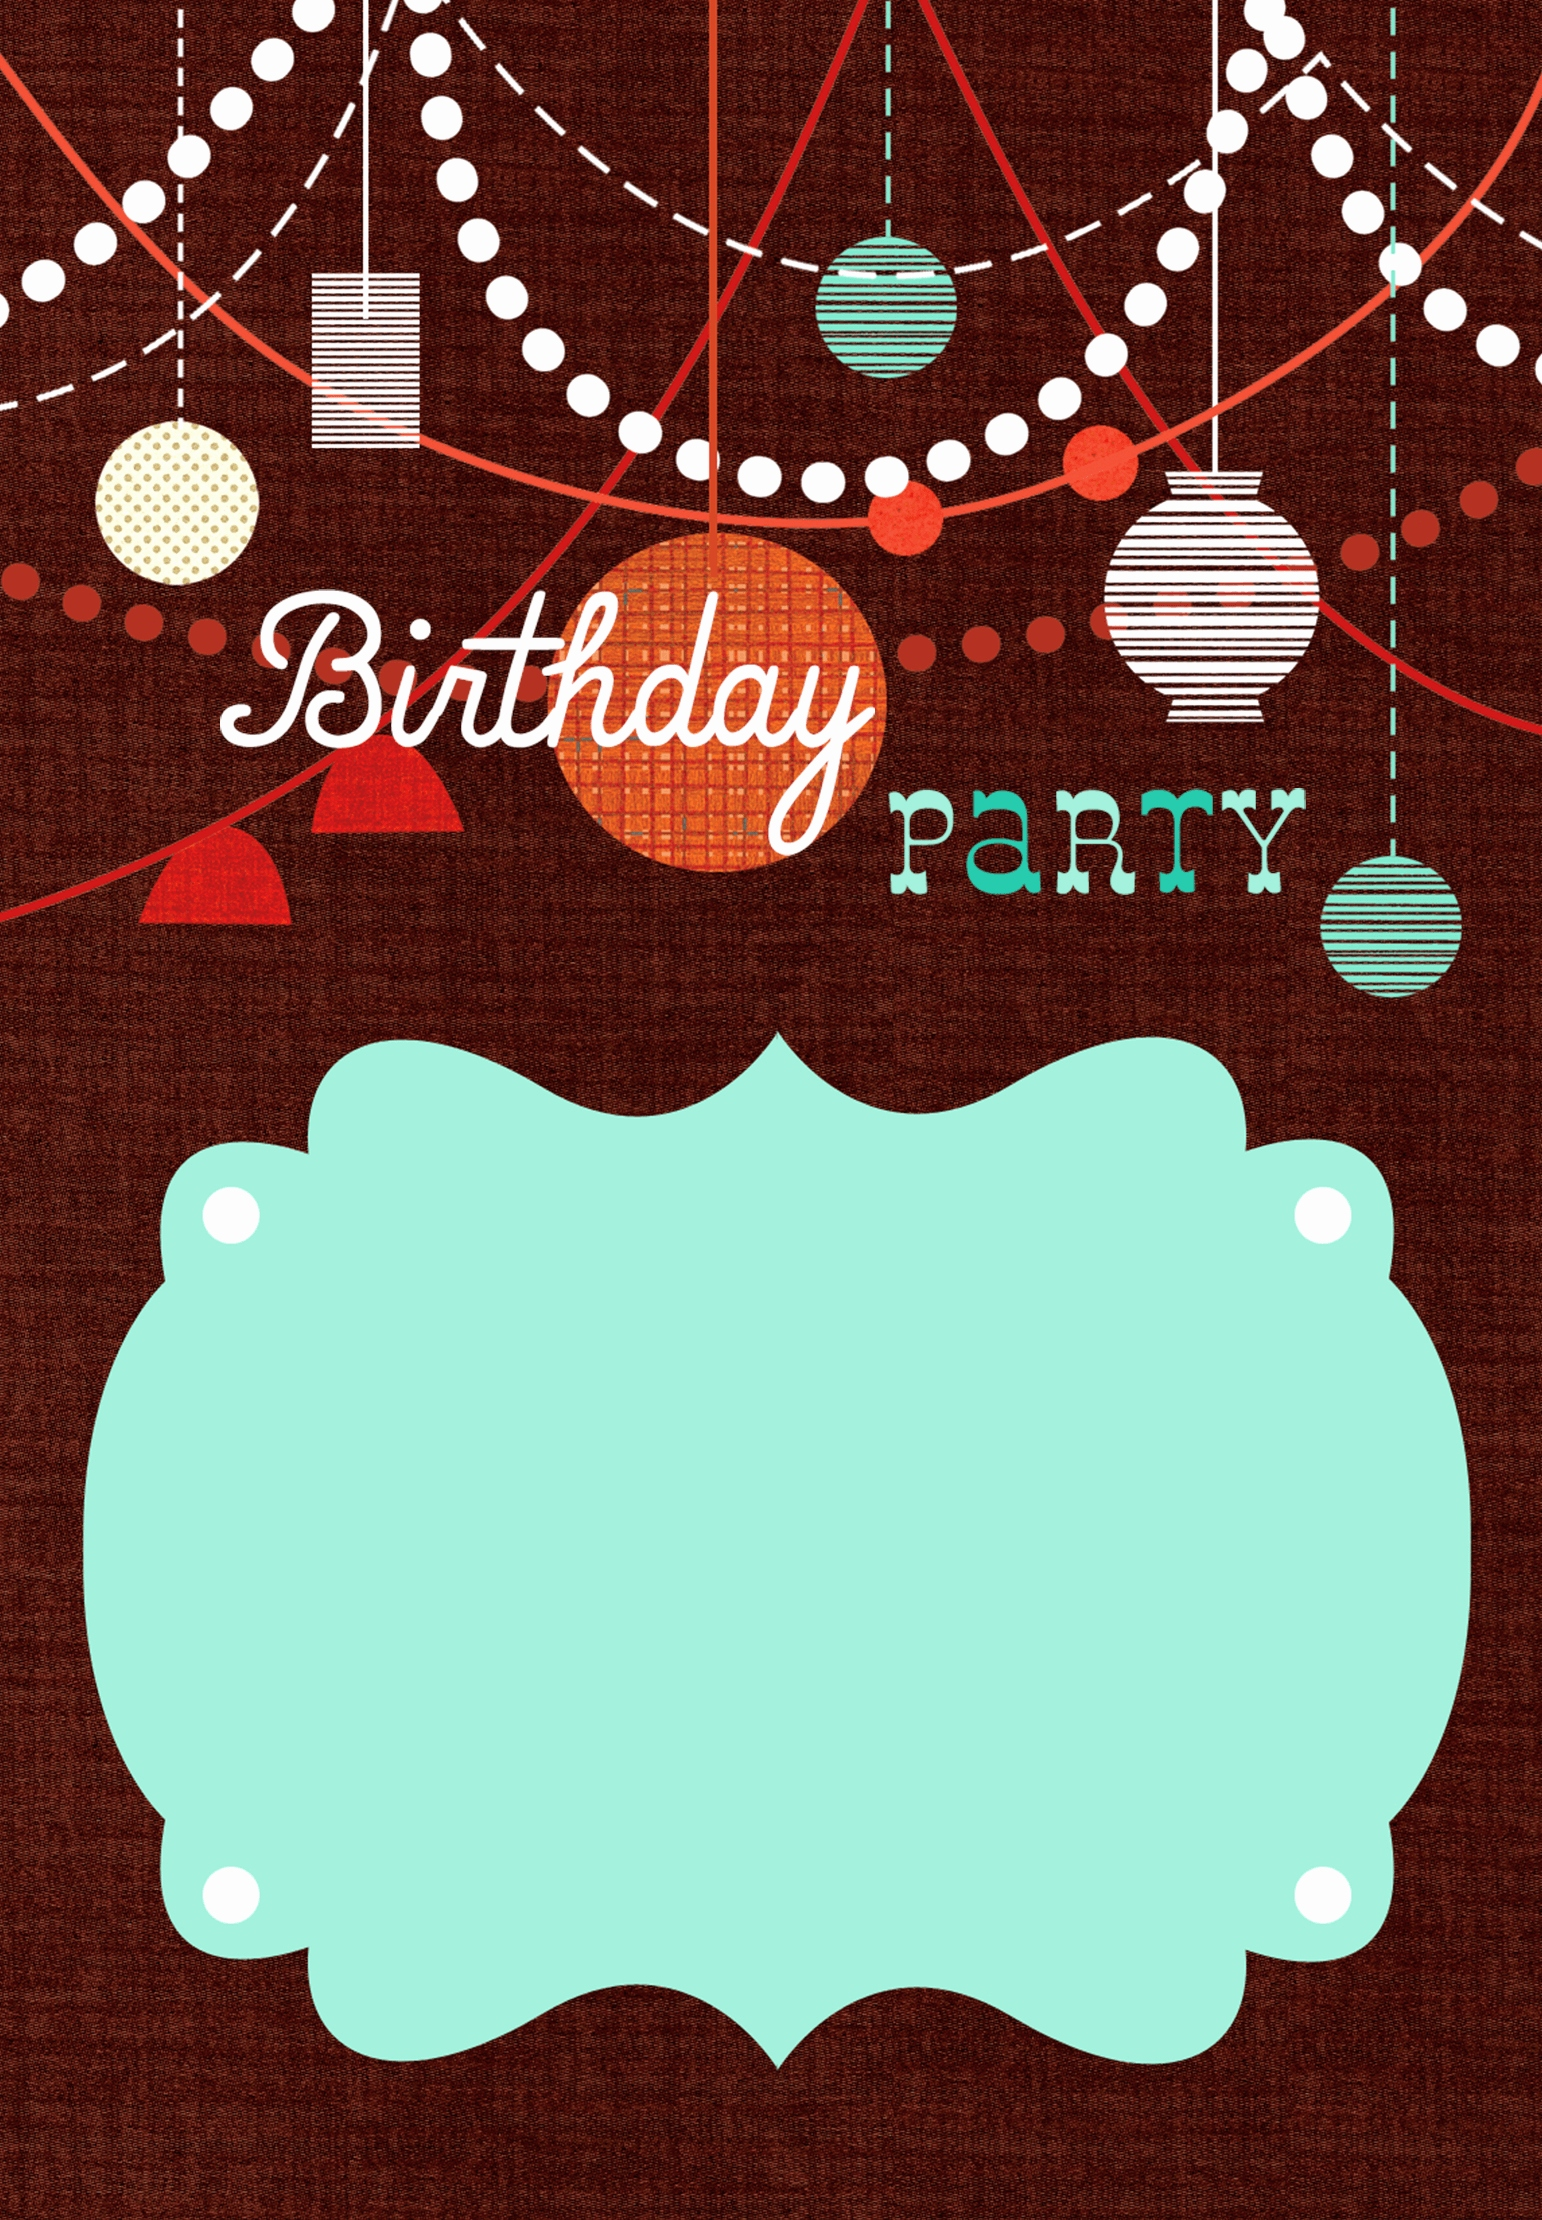 card making websites for free birthday ; card-making-websites-for-free-birthday-lovely-free-printable-celebrate-with-us-invitation-great-site-for-of-card-making-websites-for-free-birthday